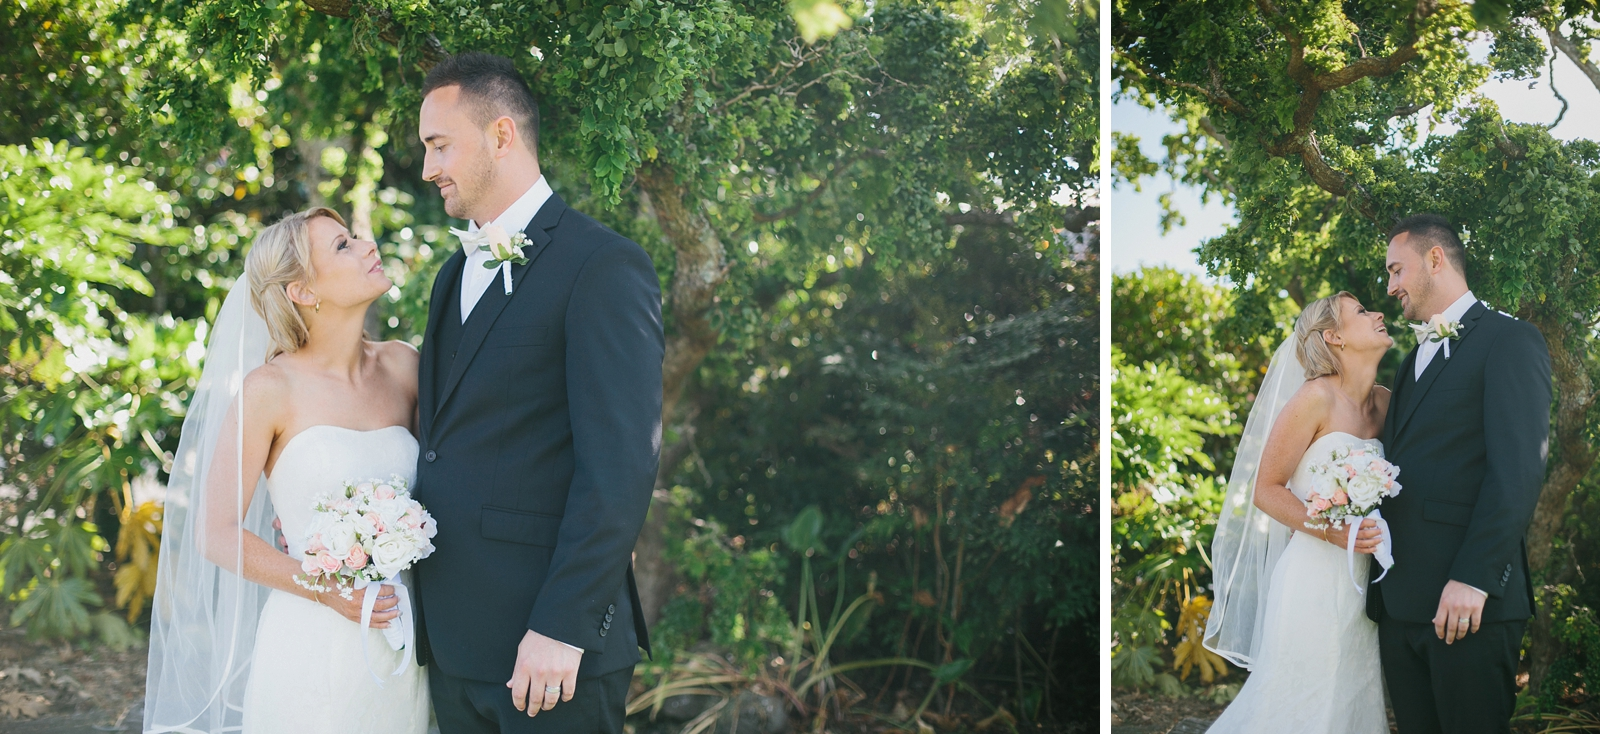 ConnorLaura_Auckland Wedding Photographer_Patty Lagera_0077.jpg